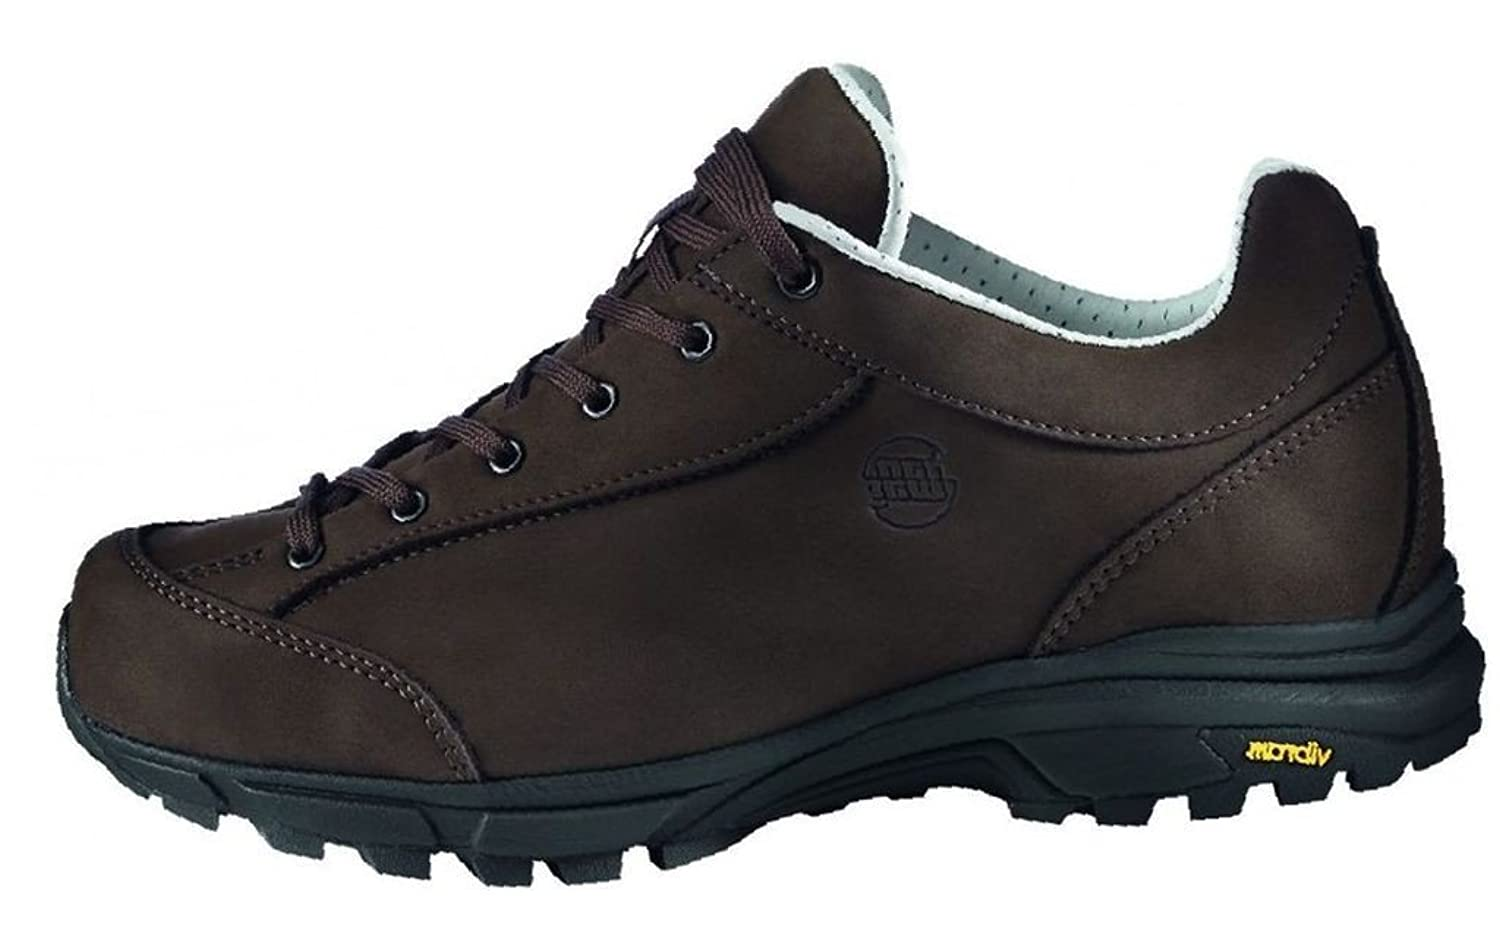 Hanwag Valungo Bunion Shoe - Men's